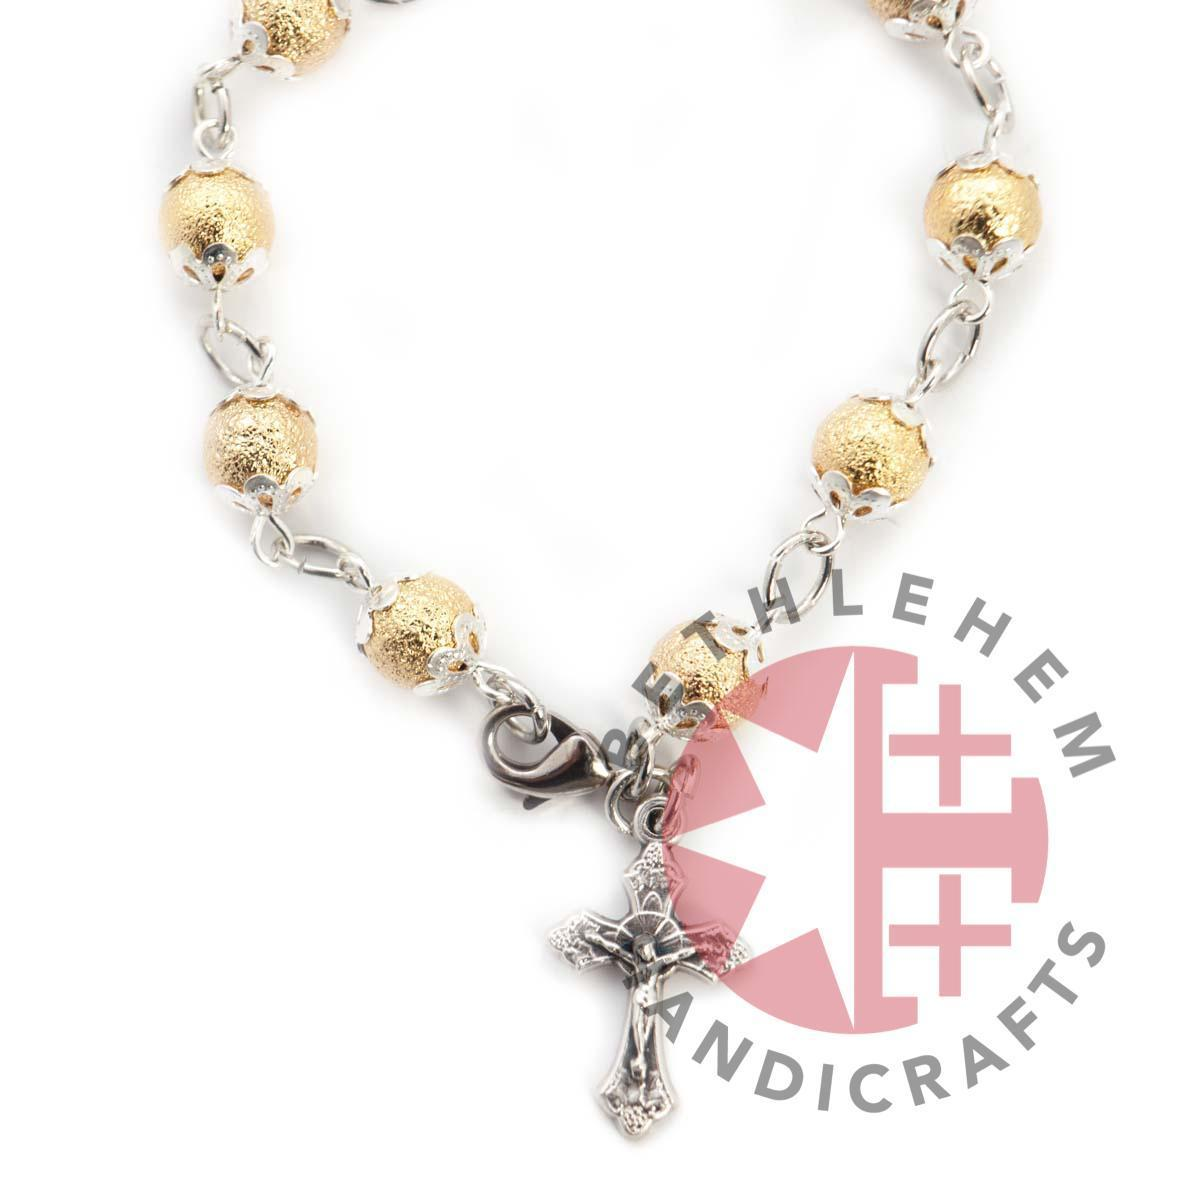 Gold Plated Beads Jesus on the Cross Rosary Bracelet - Olive Wood Jewelry